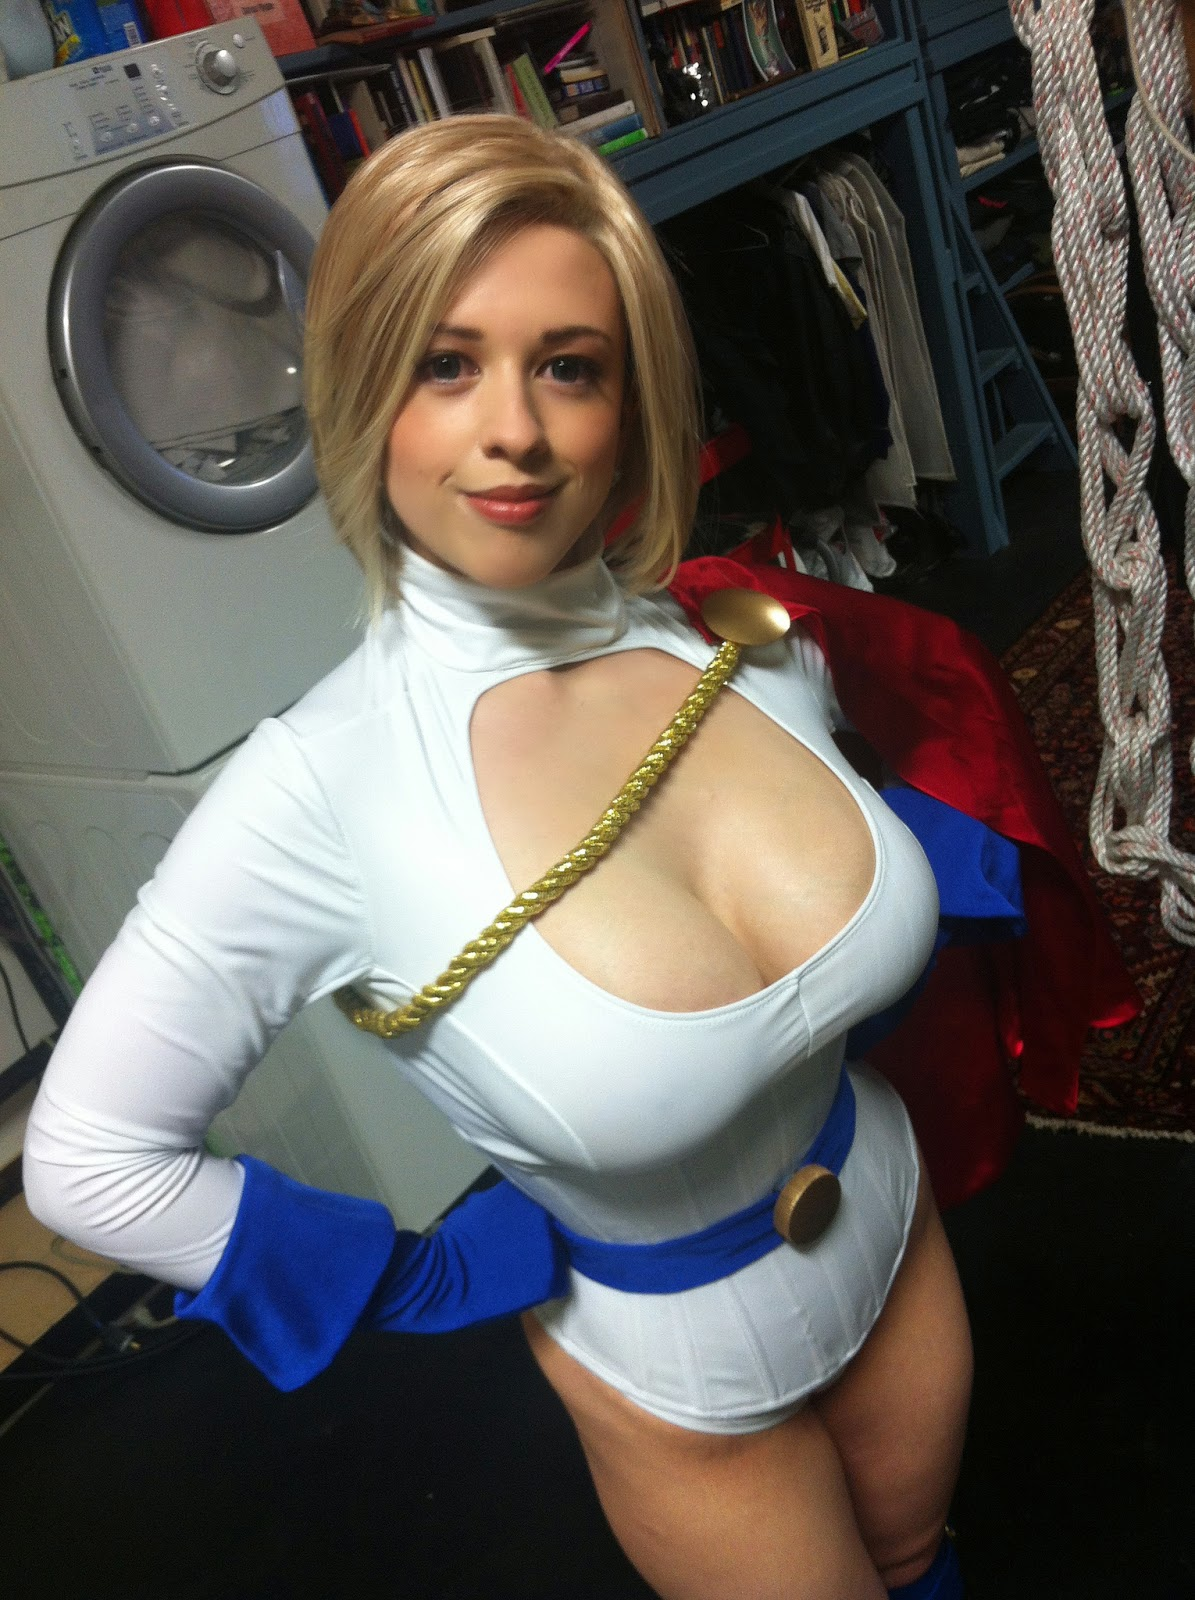 Powergirl larkin love